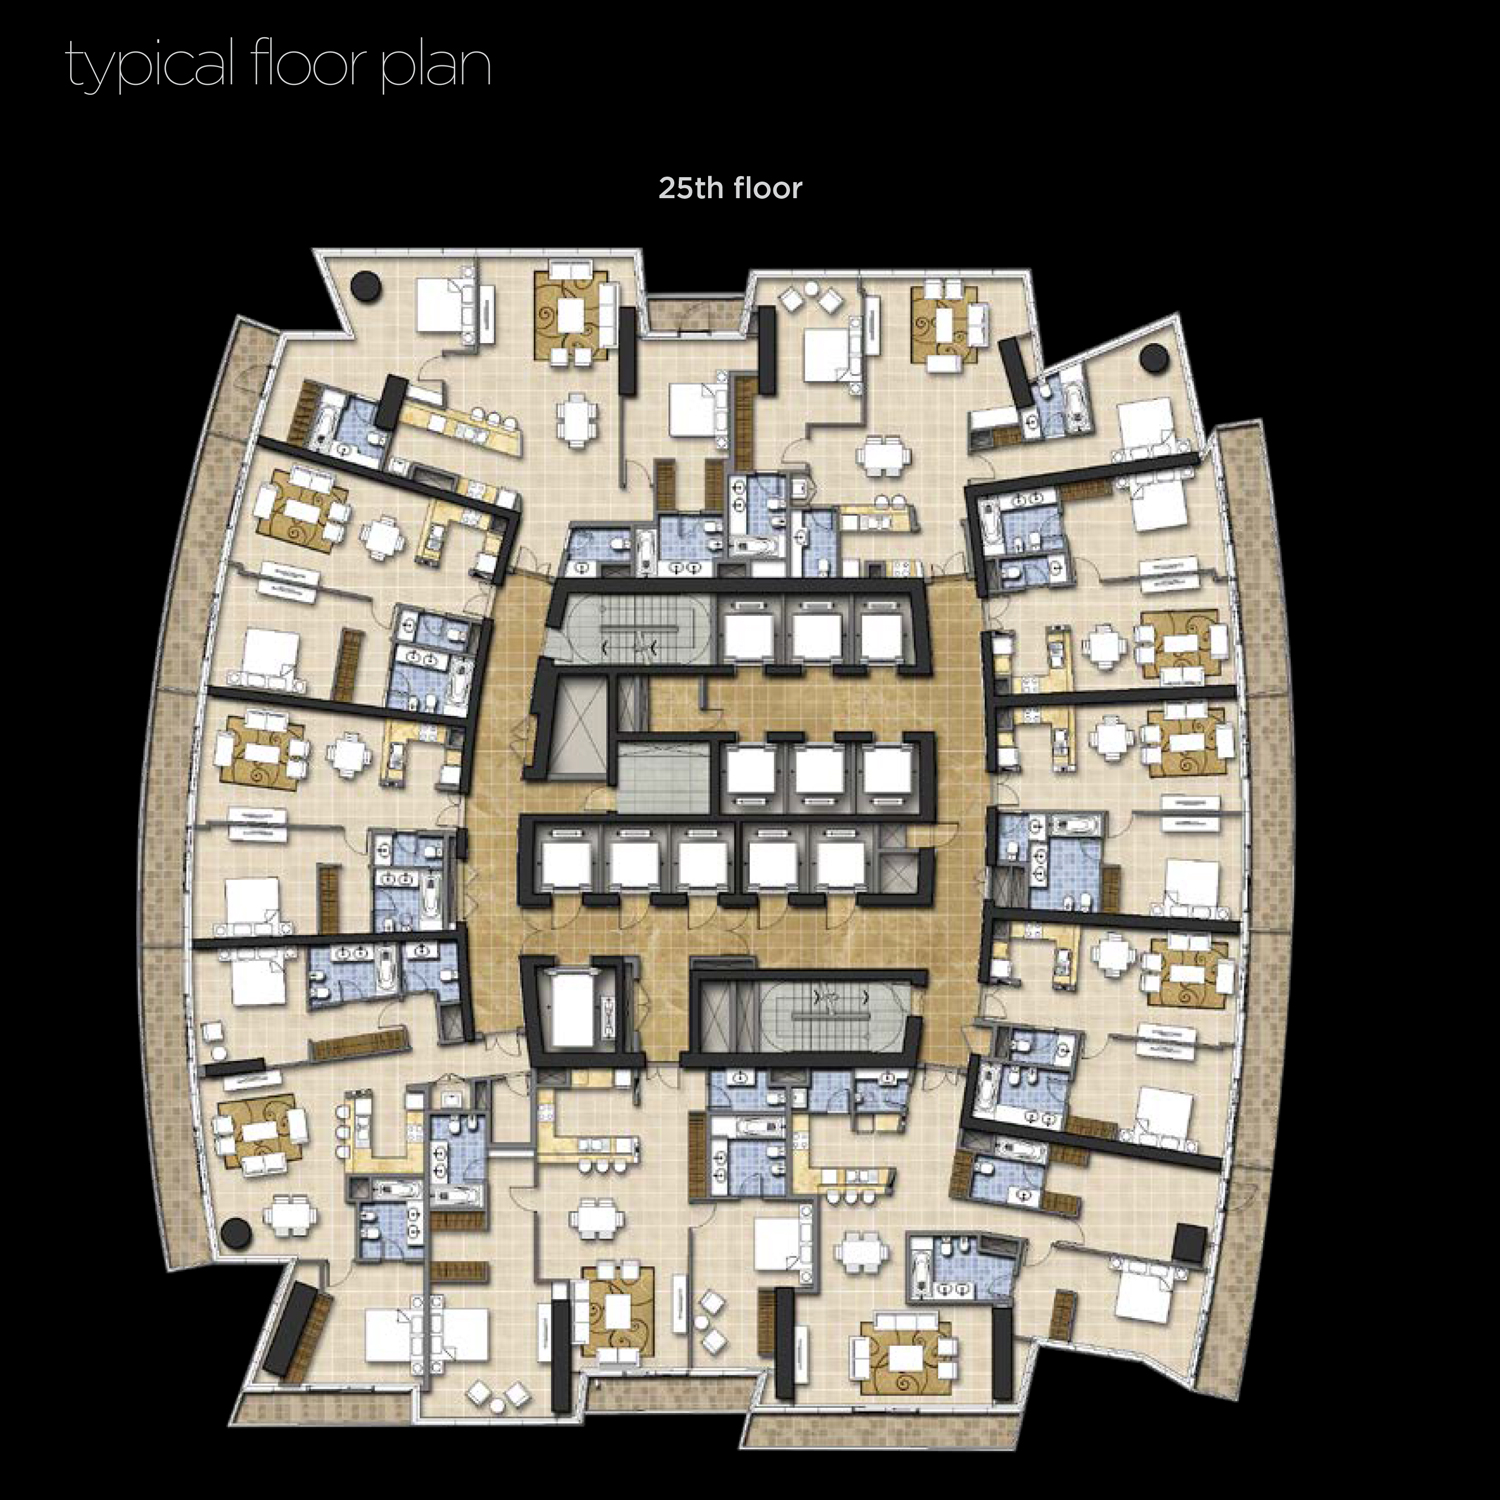 25th-Floor--Typical-Floor-Plan